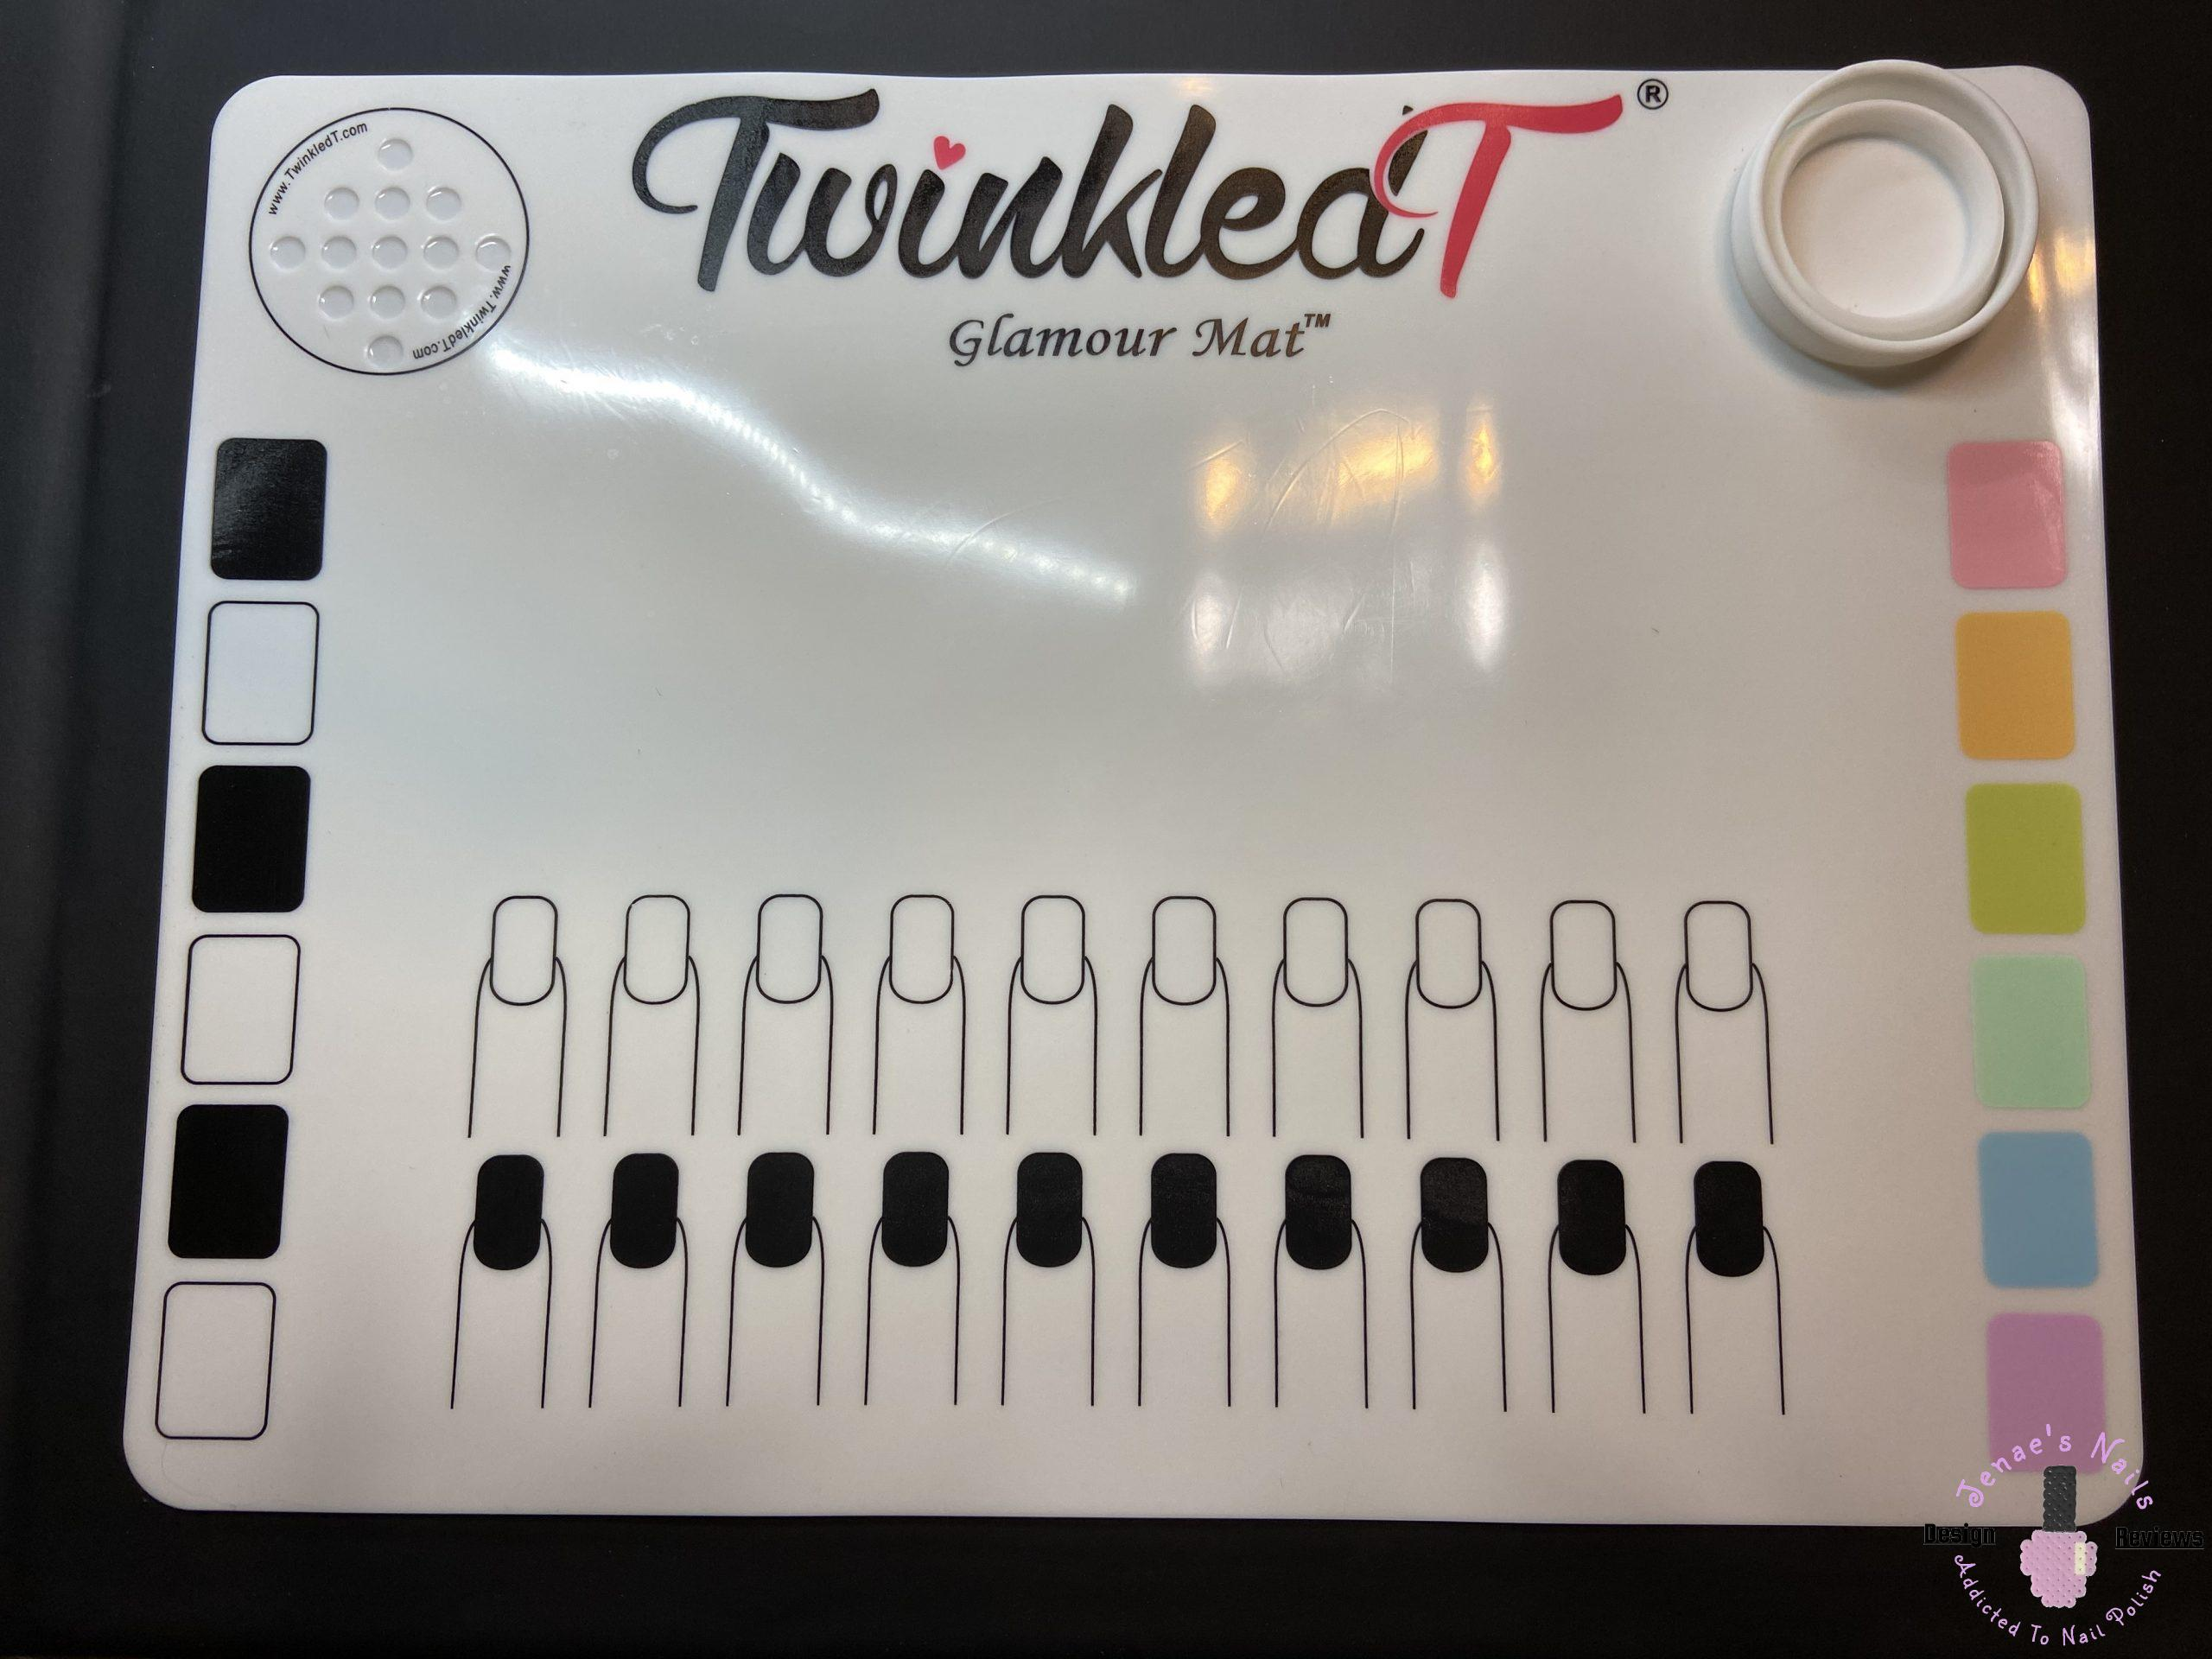 TwinkledT Glamour Mat Review